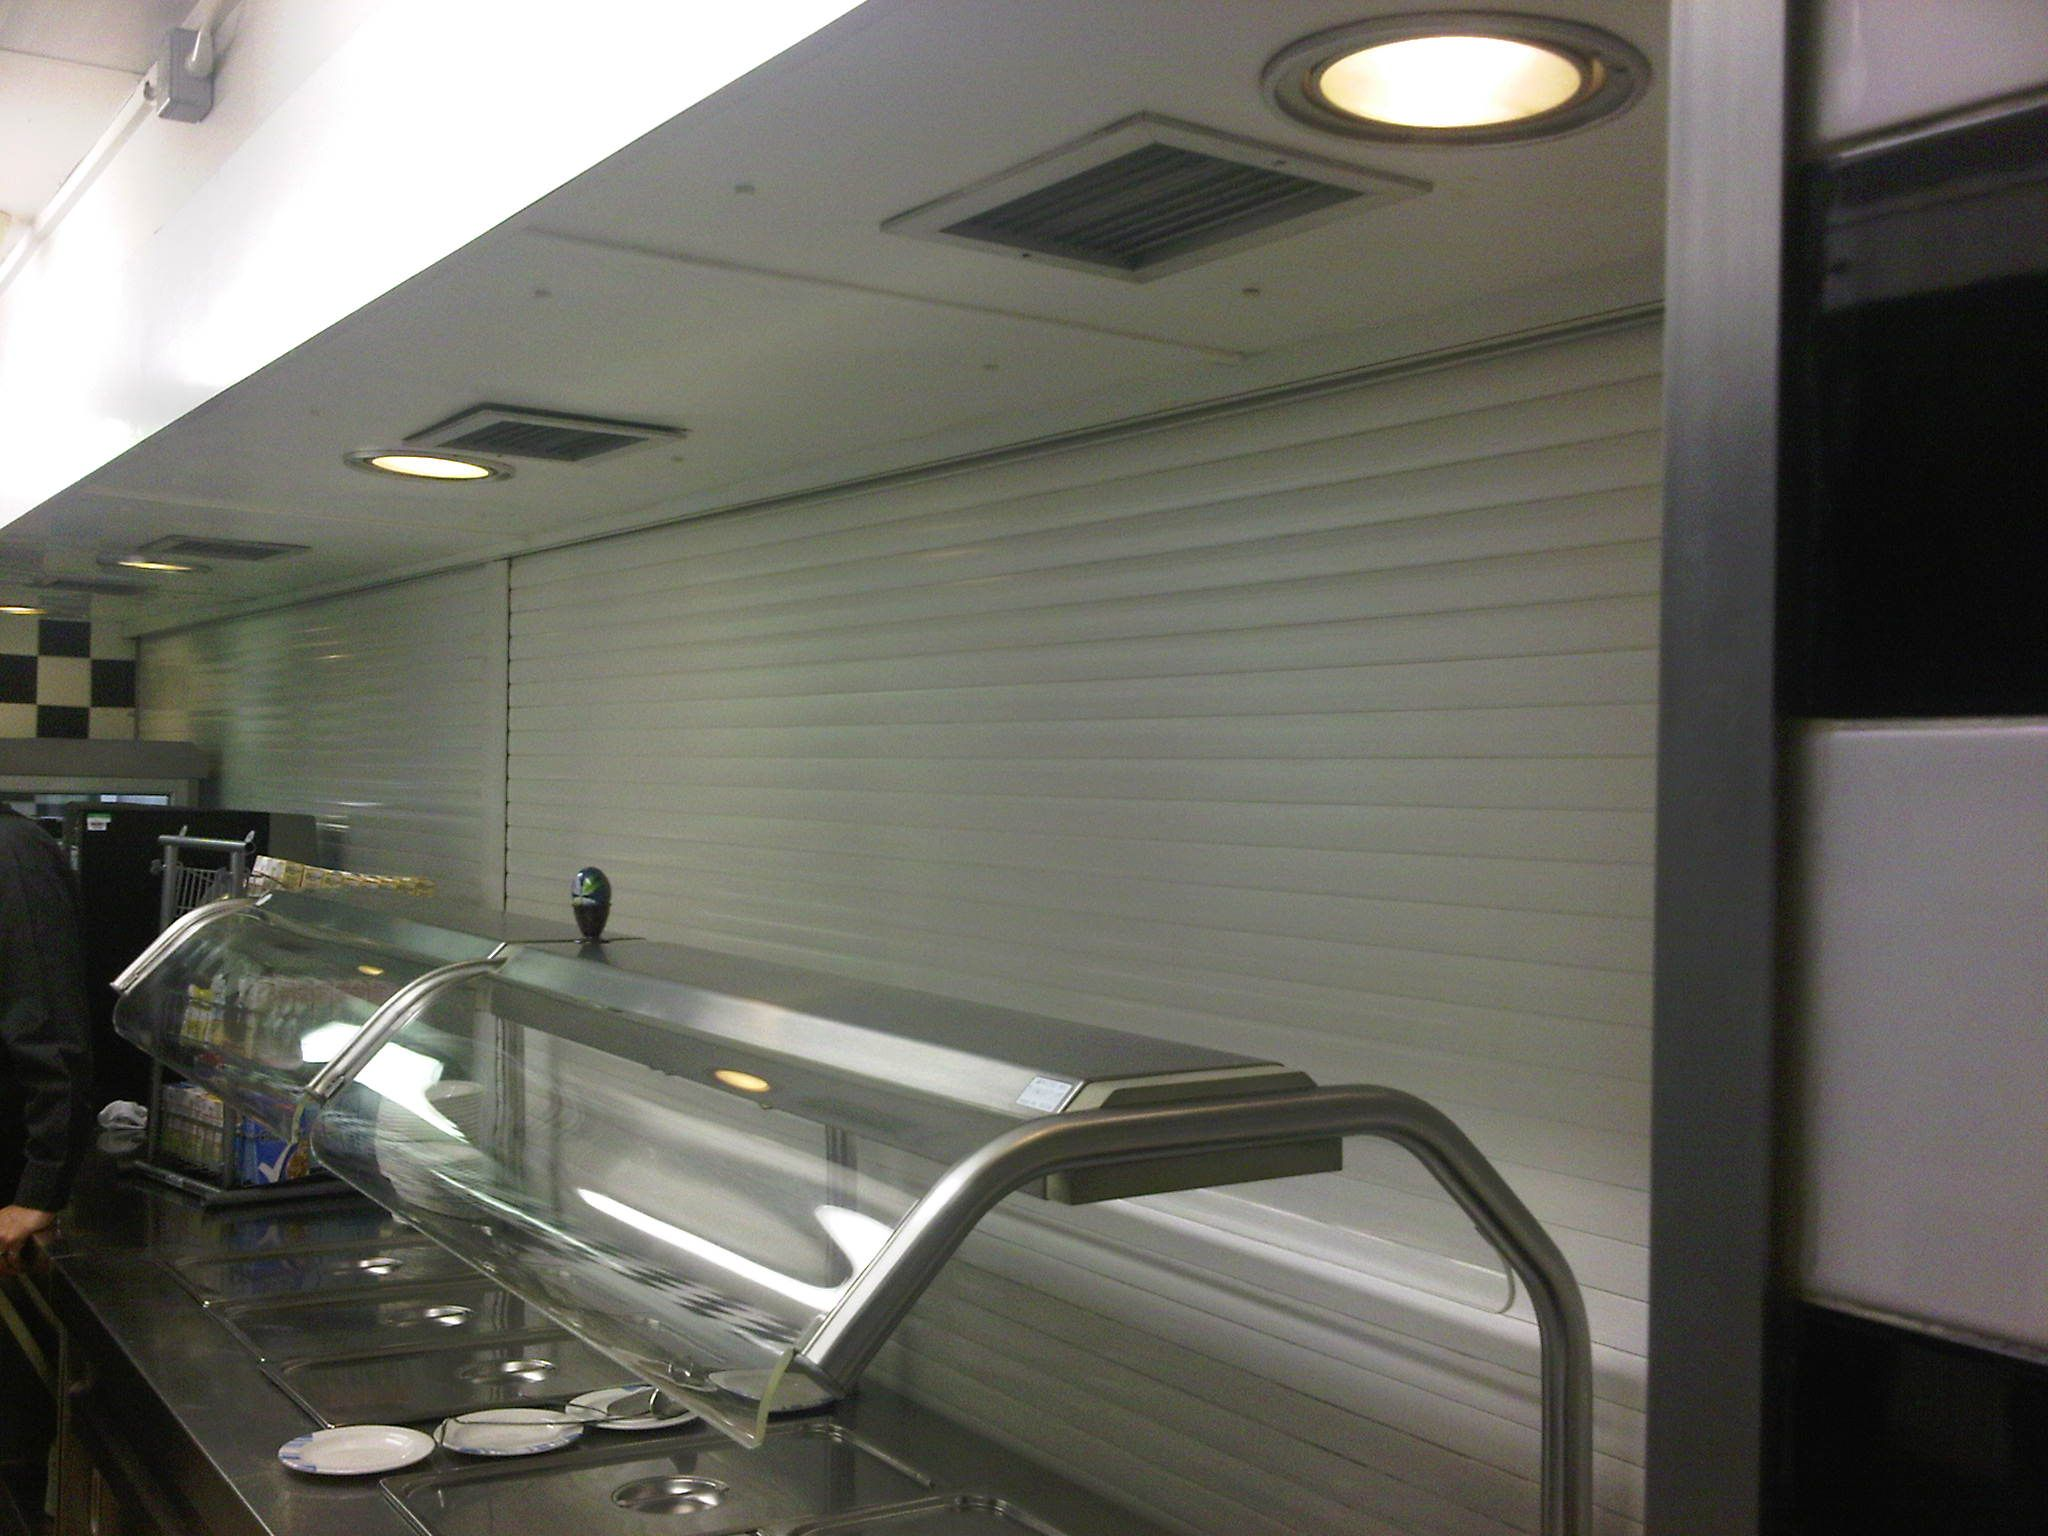 deep kitchen cleaning services by Pathway Cleaning Ltd